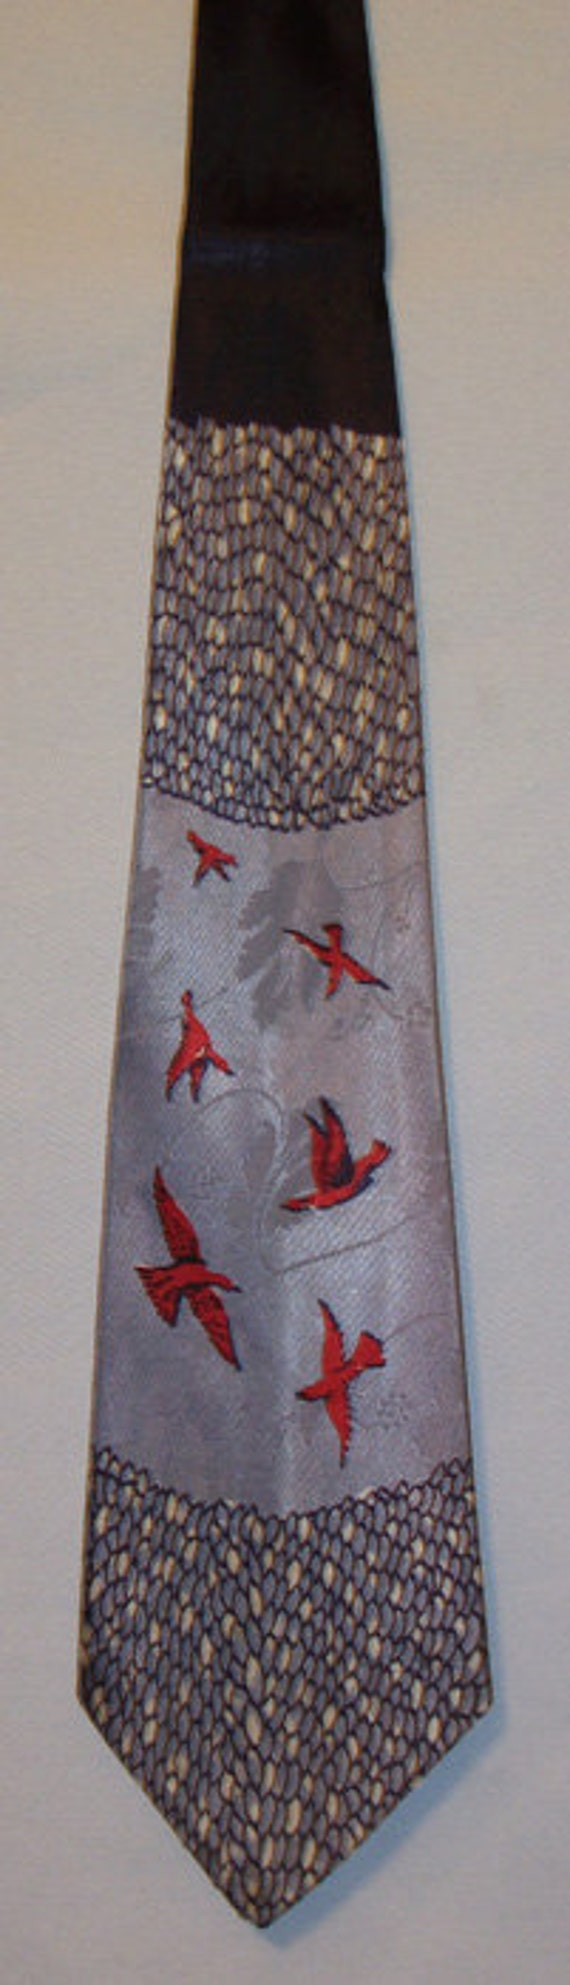 Vintage Tie, 1950's, Wide,  Cardinals, Silk, Embossed, FREE US SHIPPING